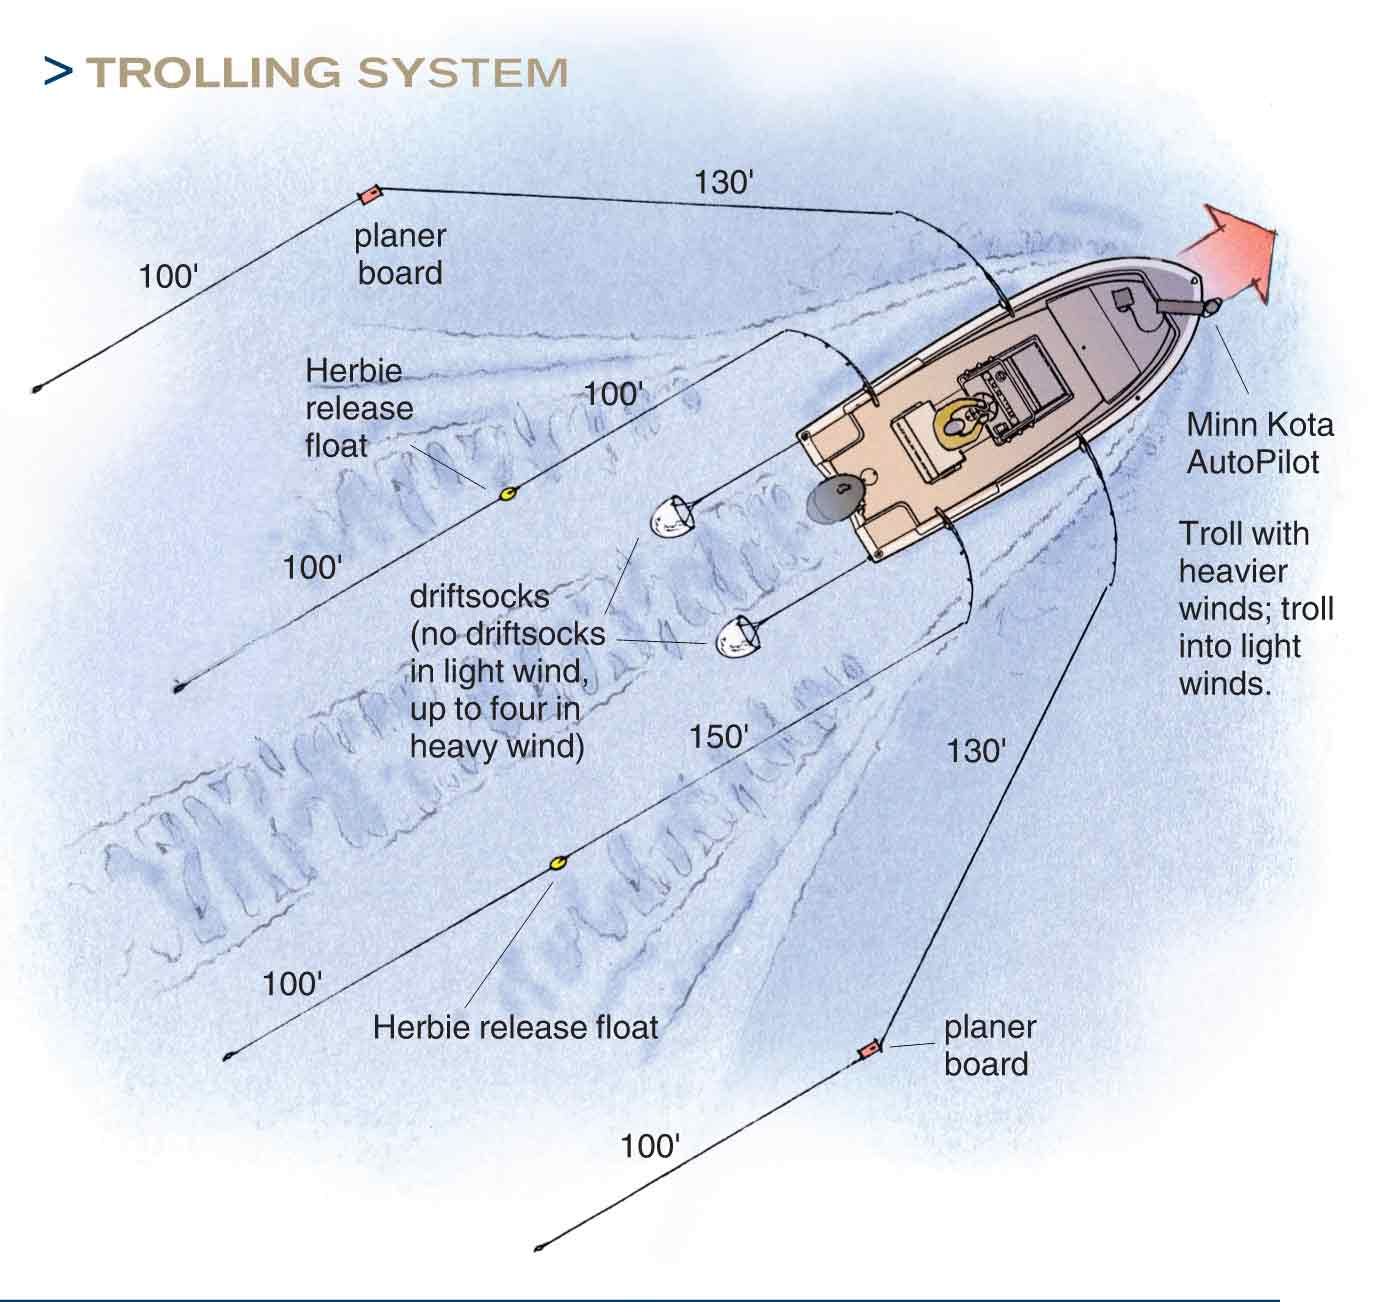 Four Rod Trolling System using planer boards, release floats and driftsocks for best use of space and speed control of the Fishing baits